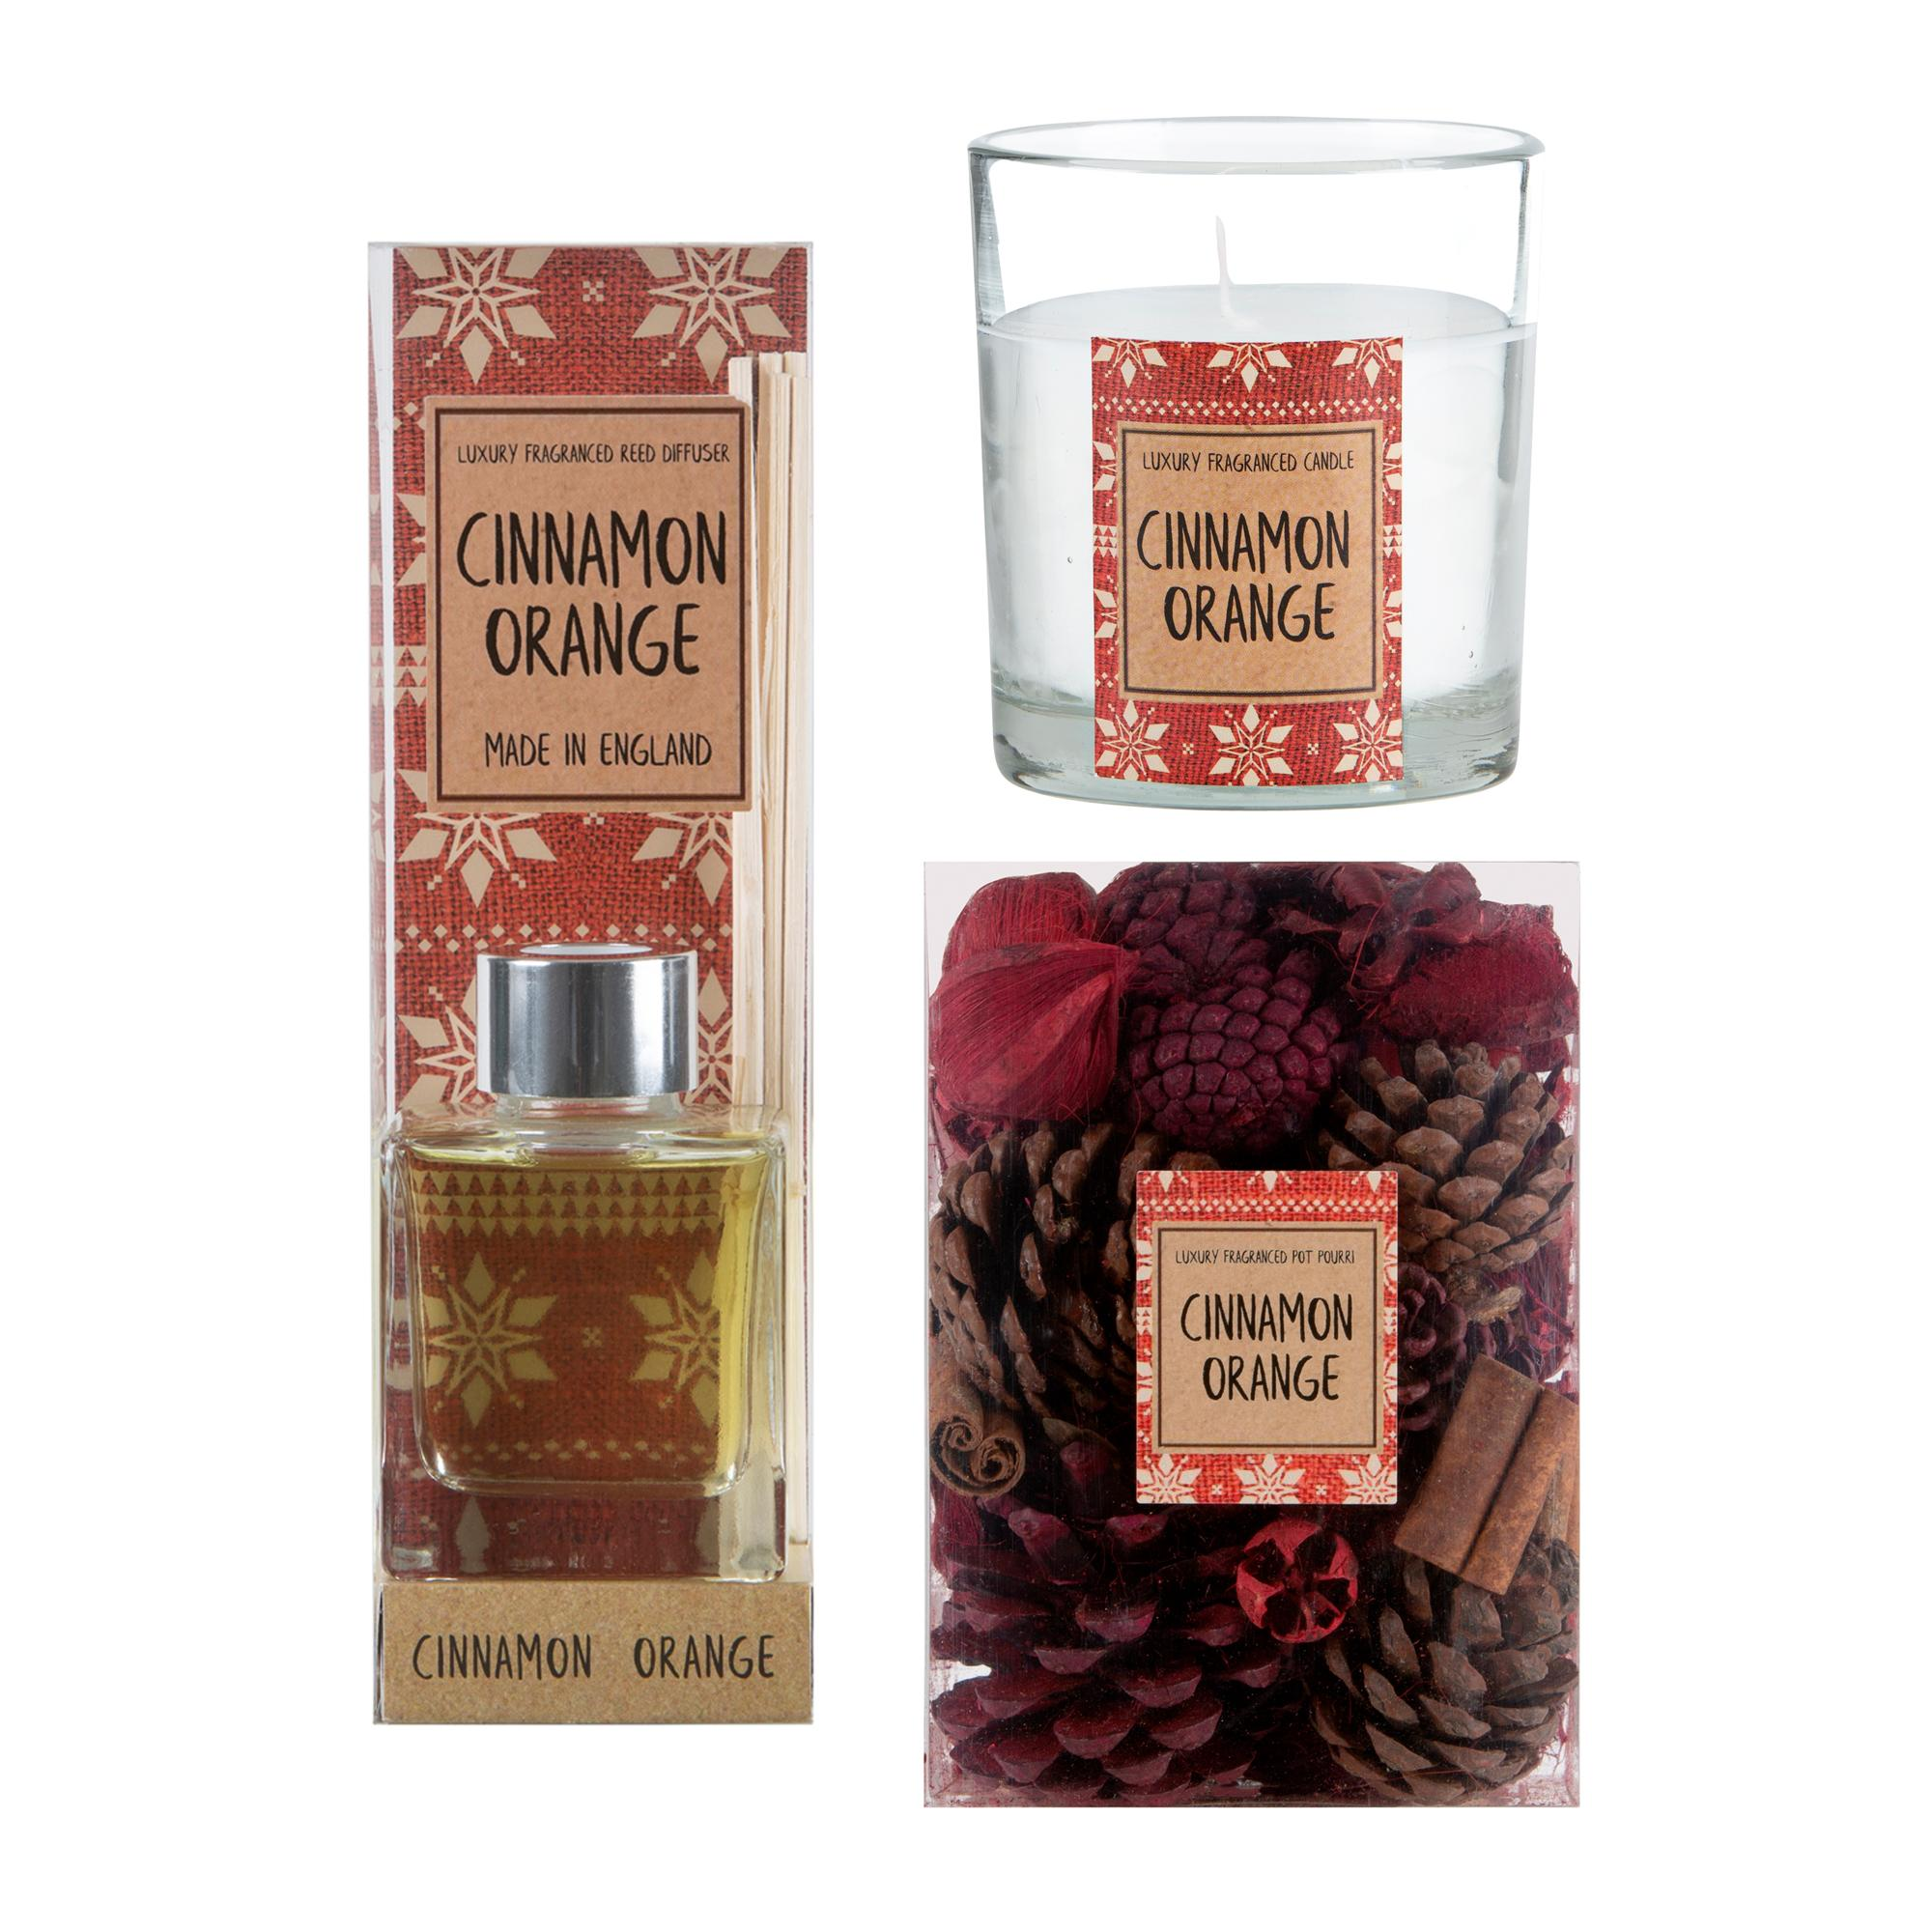 Gifts We Love: For the Fragrance Nut In Your Life, Give Greg Lauren'sScent